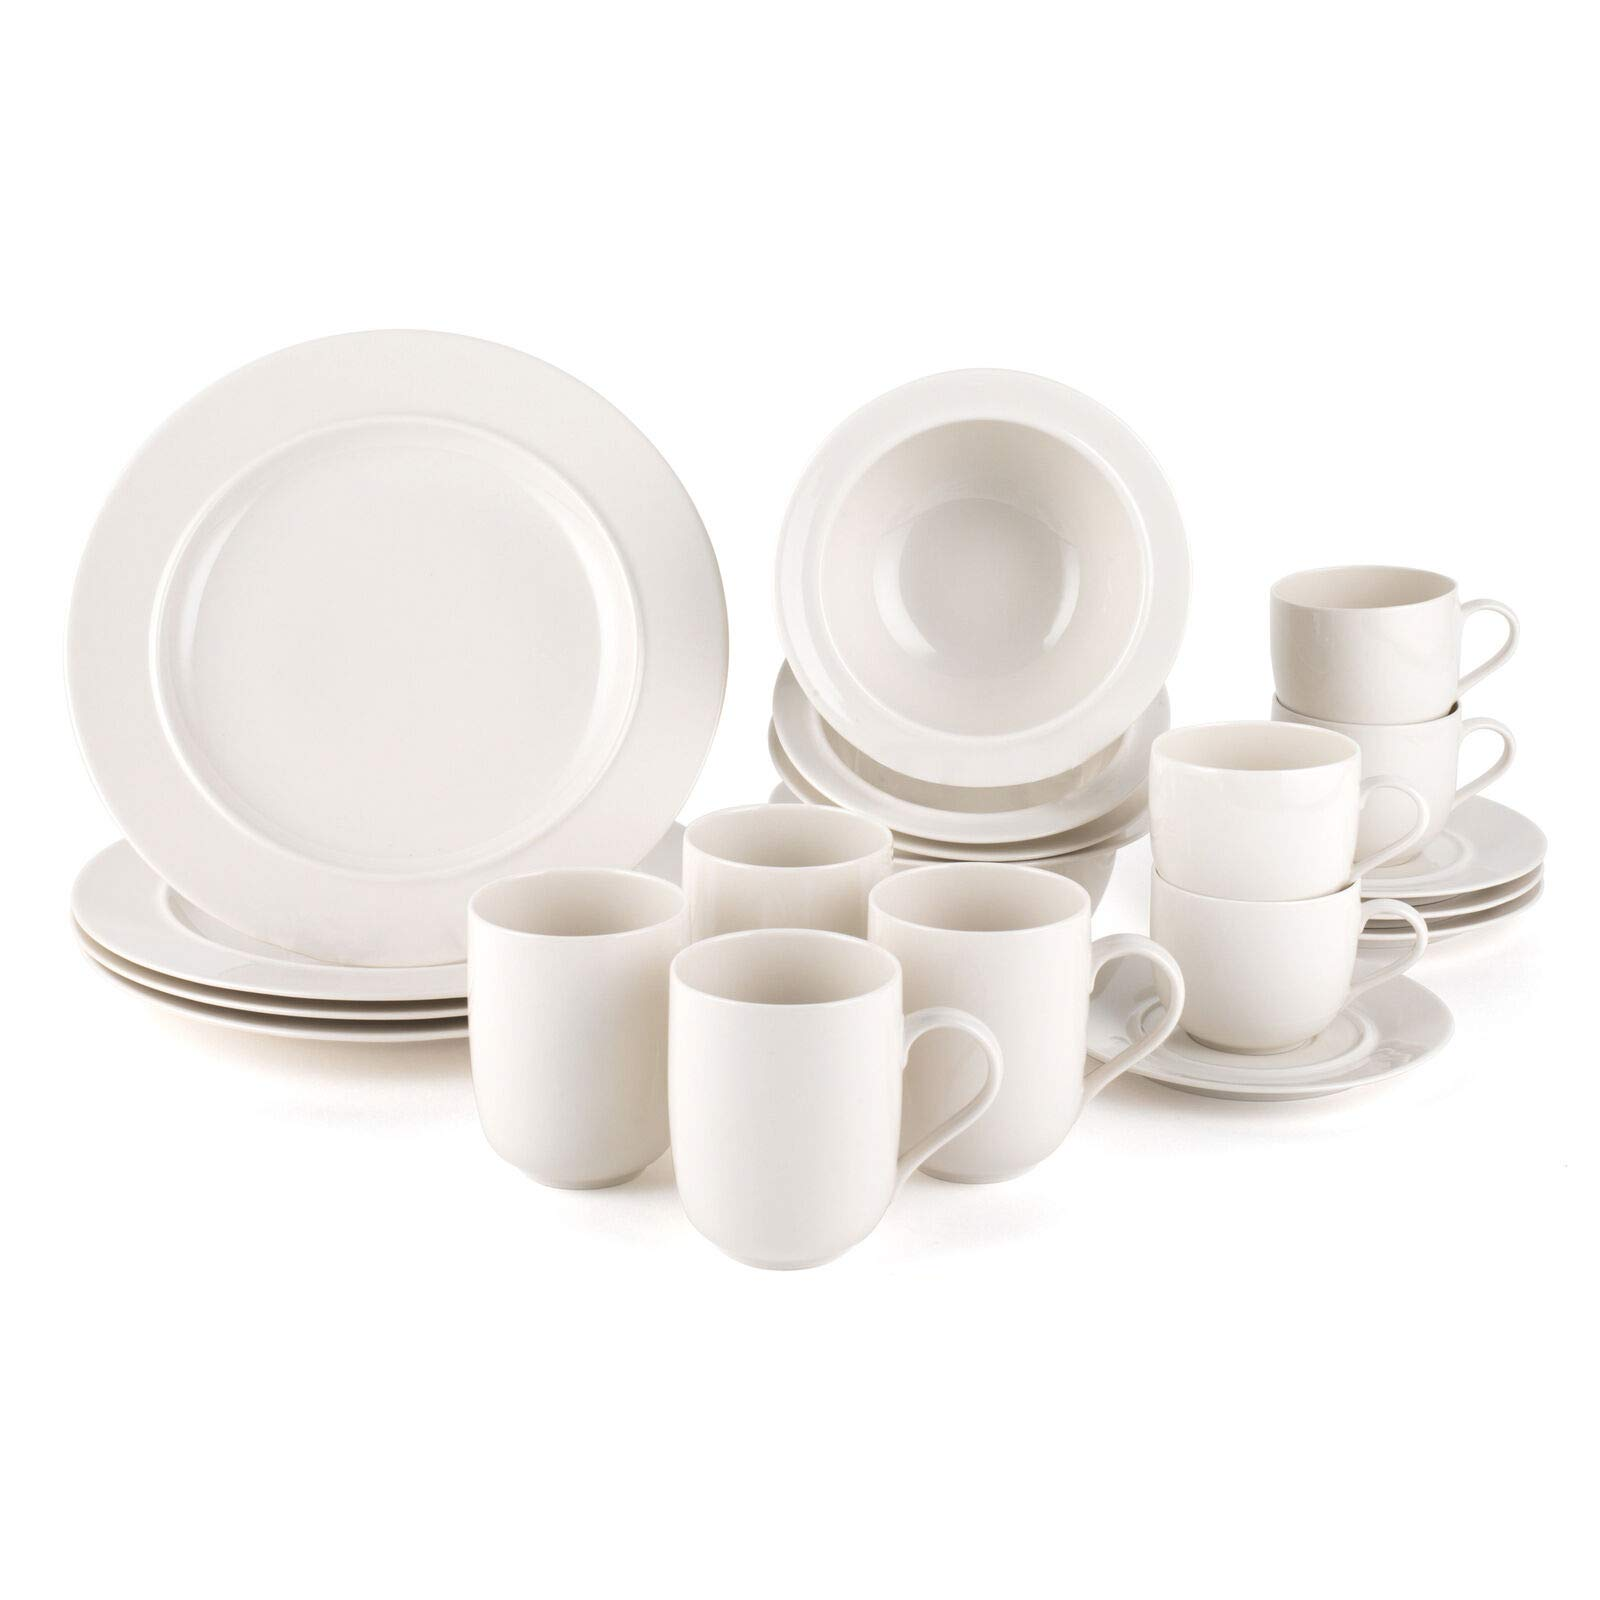 Alessi La Bella Tavola Porcelain 4 Place Setting Breakfast And Dinner Dining Set Buy Online In Dominica At Dominica Desertcart Com Productid 66981557